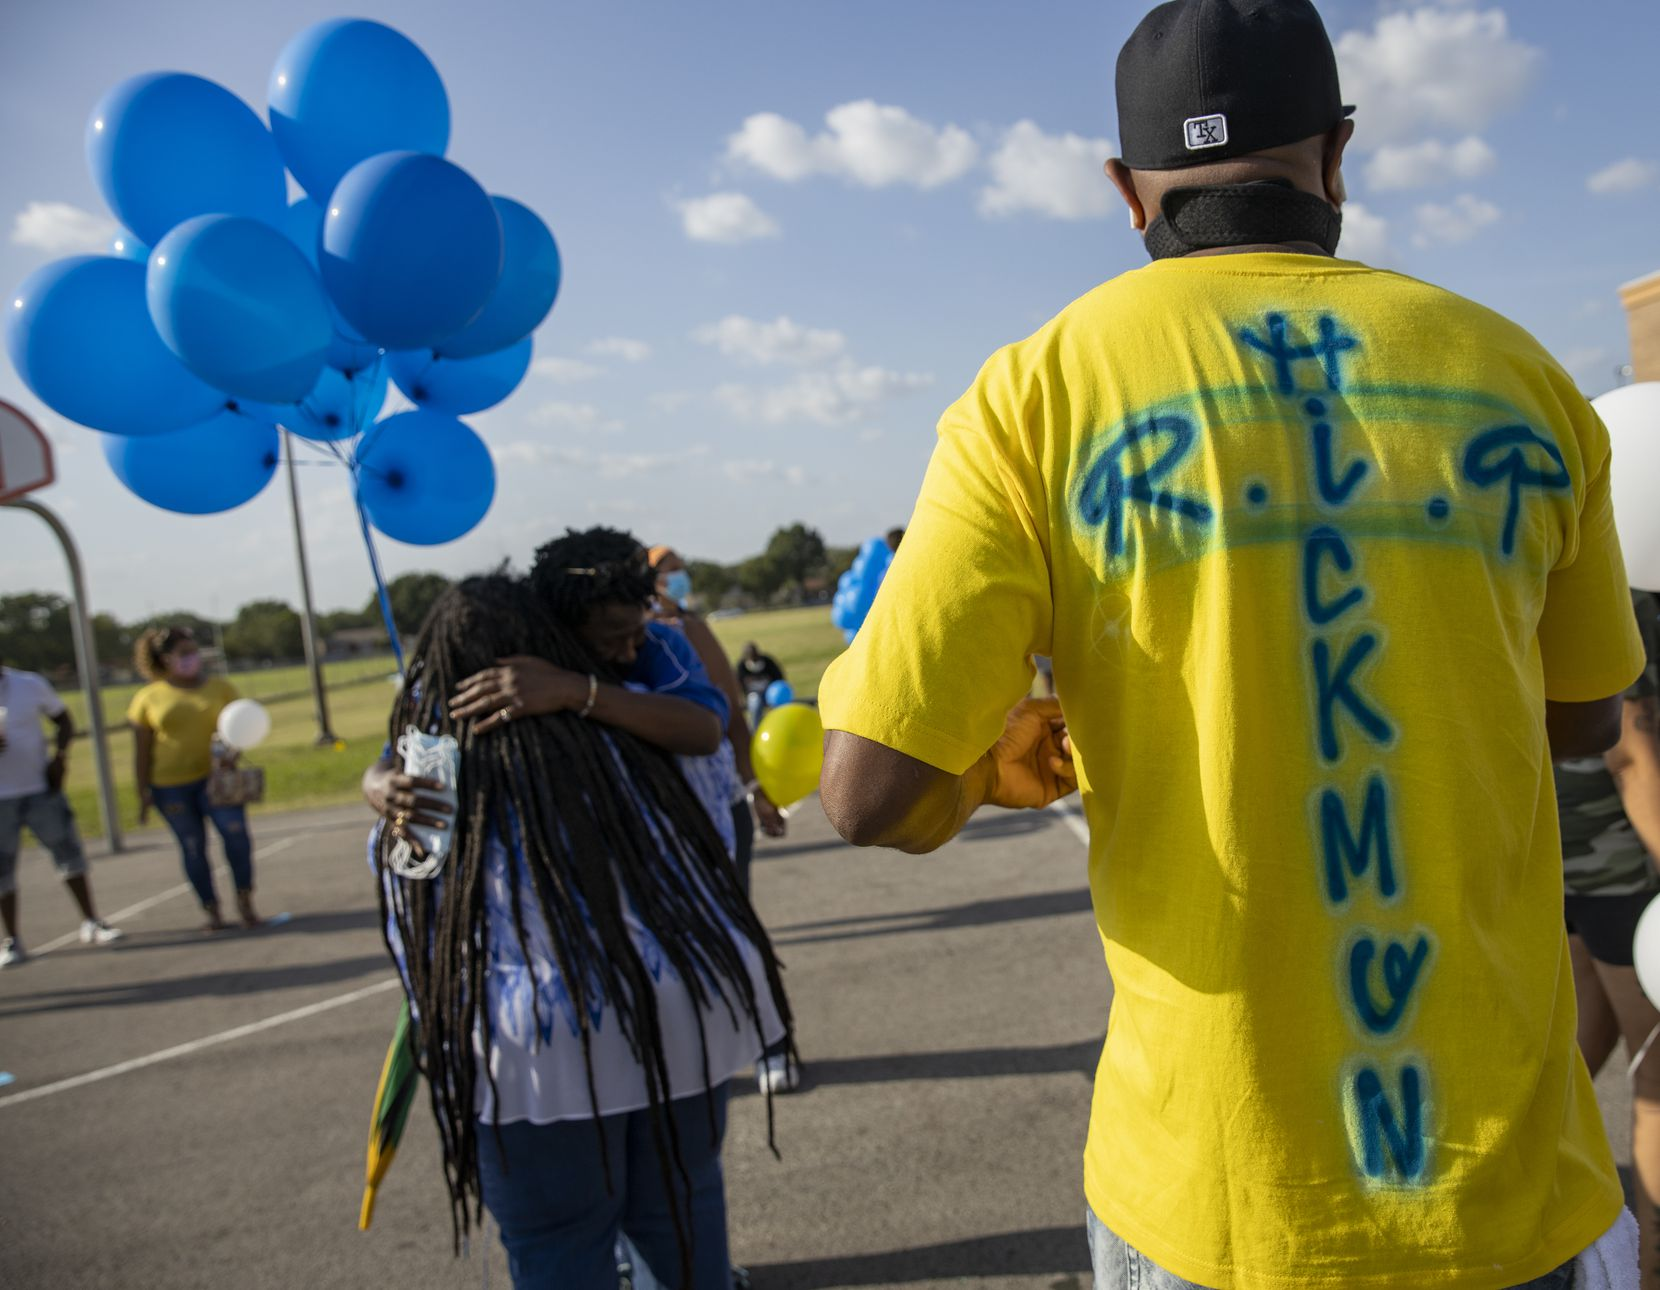 Colleagues, students and community members gather before a balloon release ceremony honoring late Dallas ISD coach and teacher Jennifer Hickmon on July 17, 2020, in Pleasant Grove in Dallas. The Young Men's Leadership Academy at Fred Florence Middle School teacher was found slain earlier this week in her southeast Oak Cliff home.